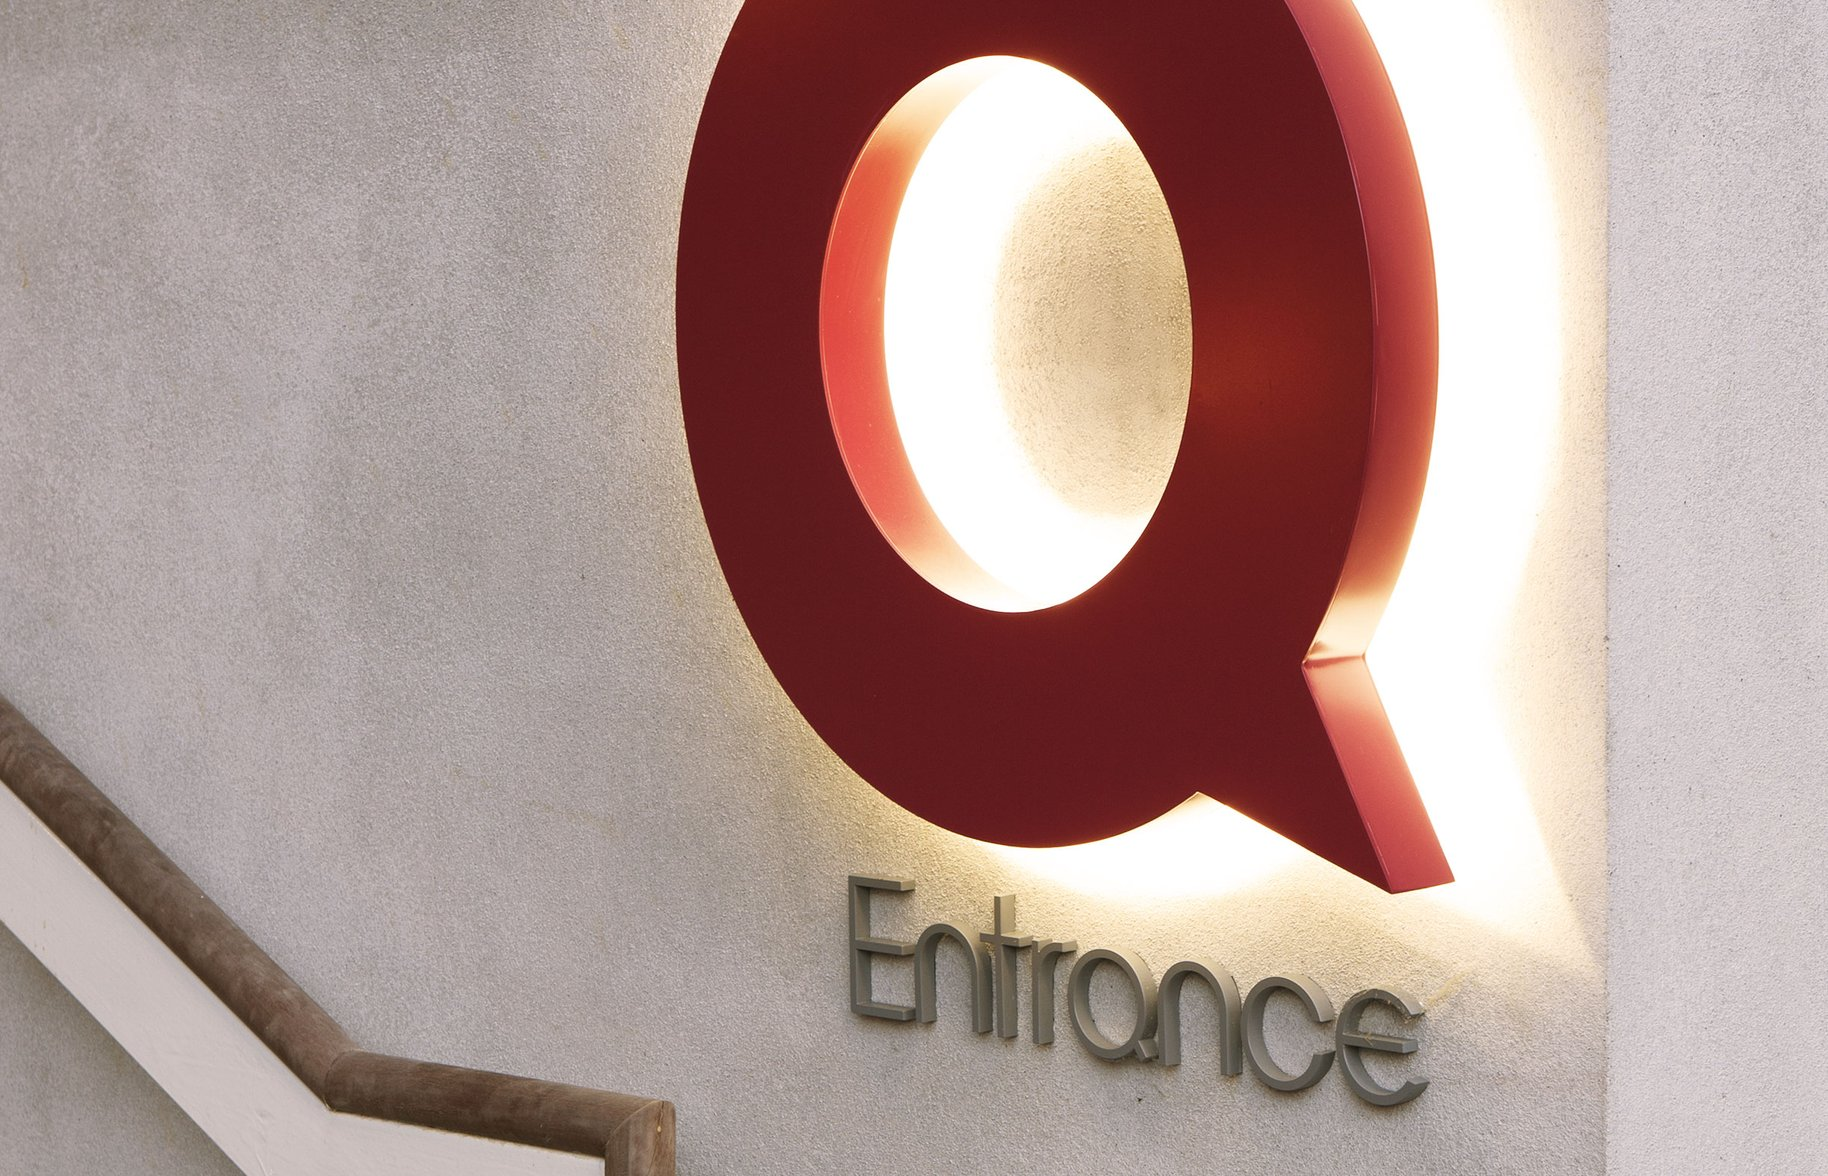 Q Theatre spatial design entrance sign